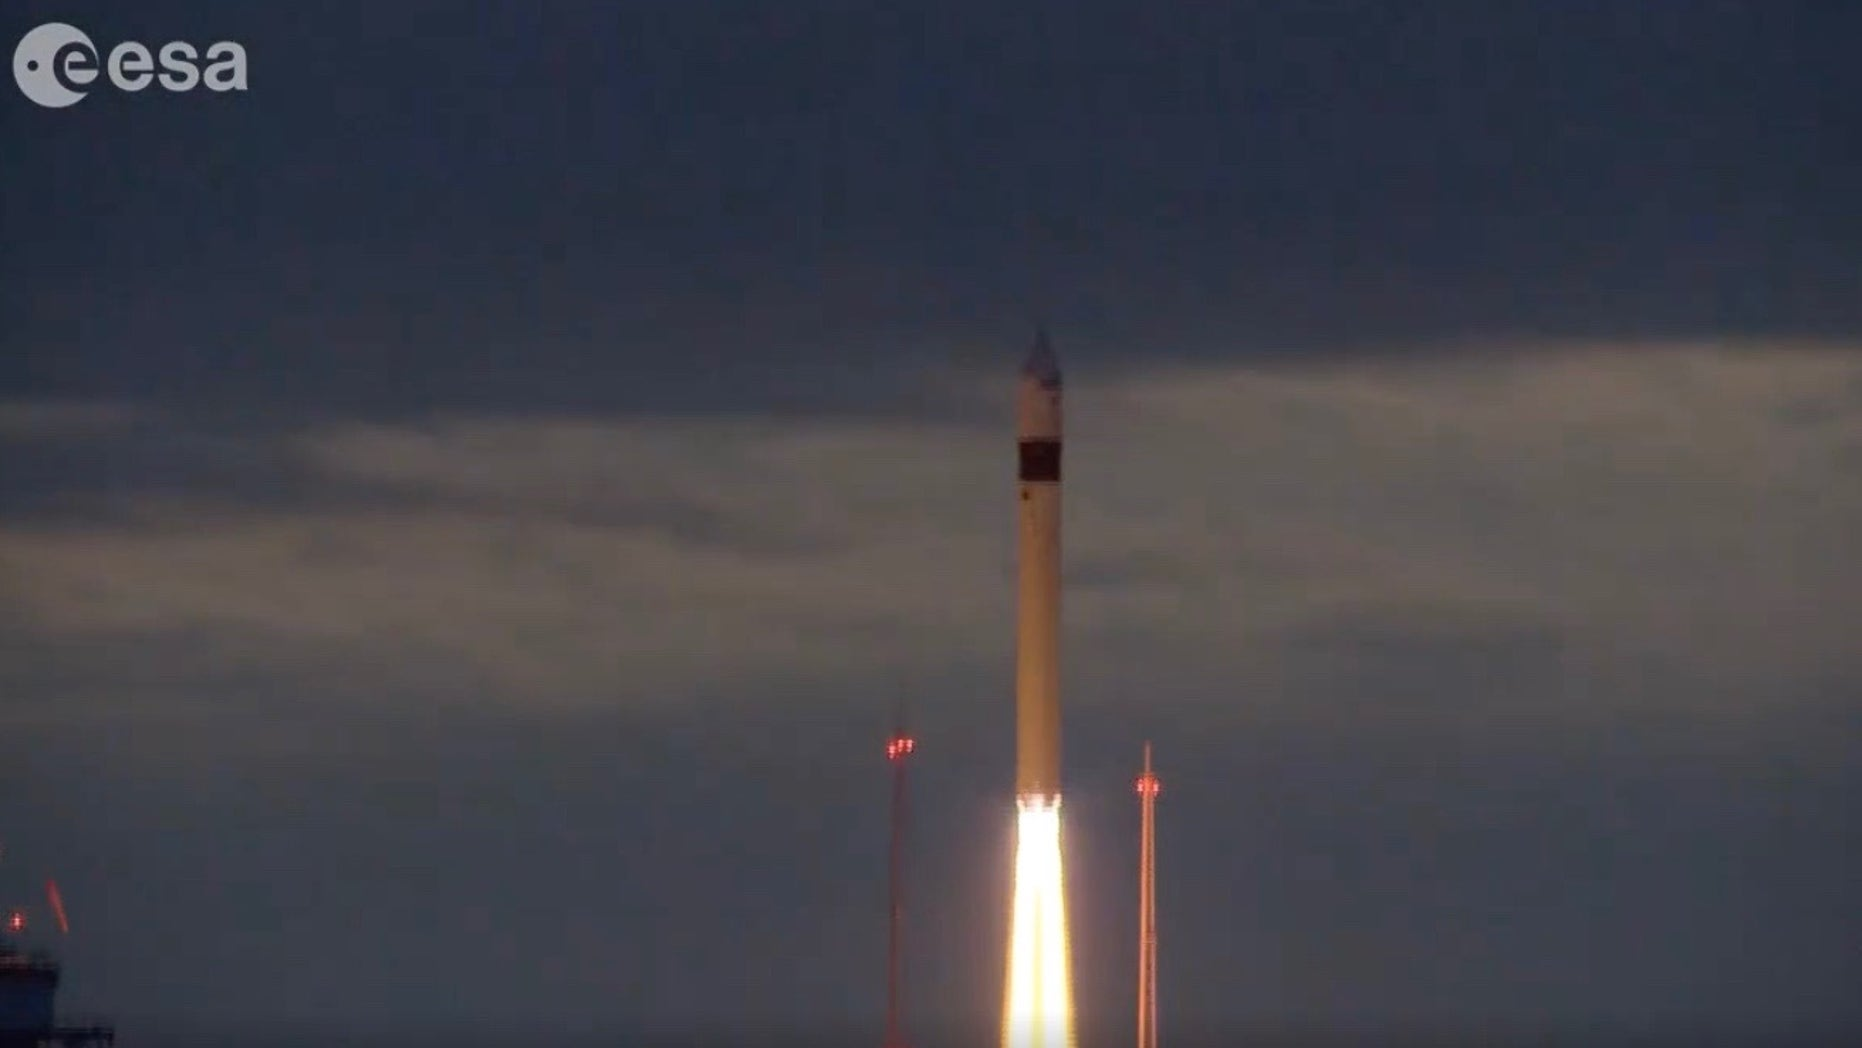 Europe's Sentinel-3B Earth-observation satellite launches atop a Rockot rocket from Plesetsk Cosmodrome in Russia on April 25, 2018.